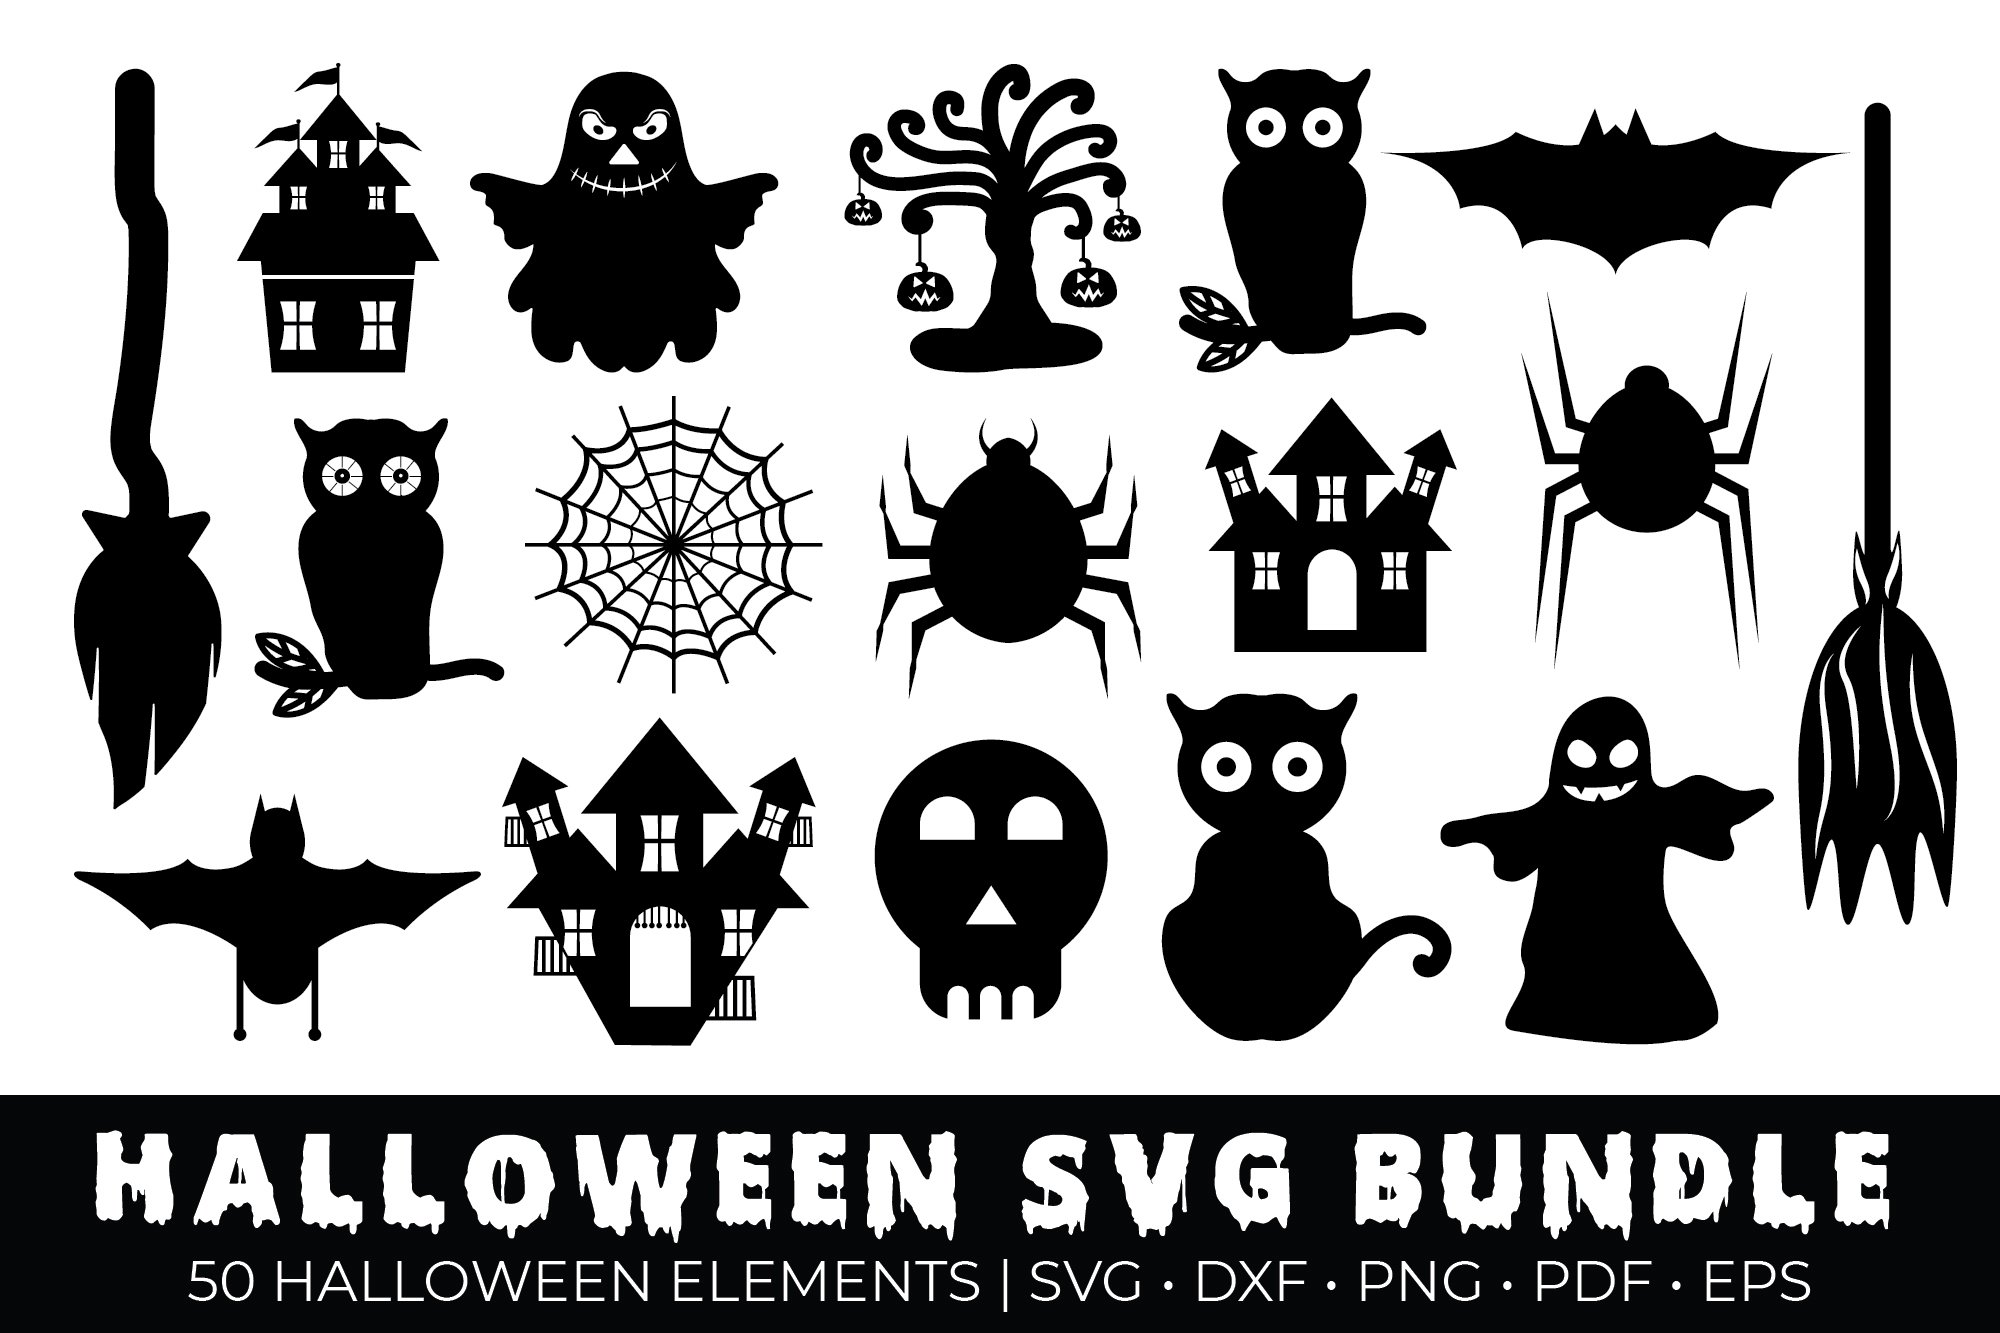 Download Halloween Bundle 40 Svg File Cutting File Clipart In Svg, Eps, Dxf, Png For Cricut & Silhouette SVG